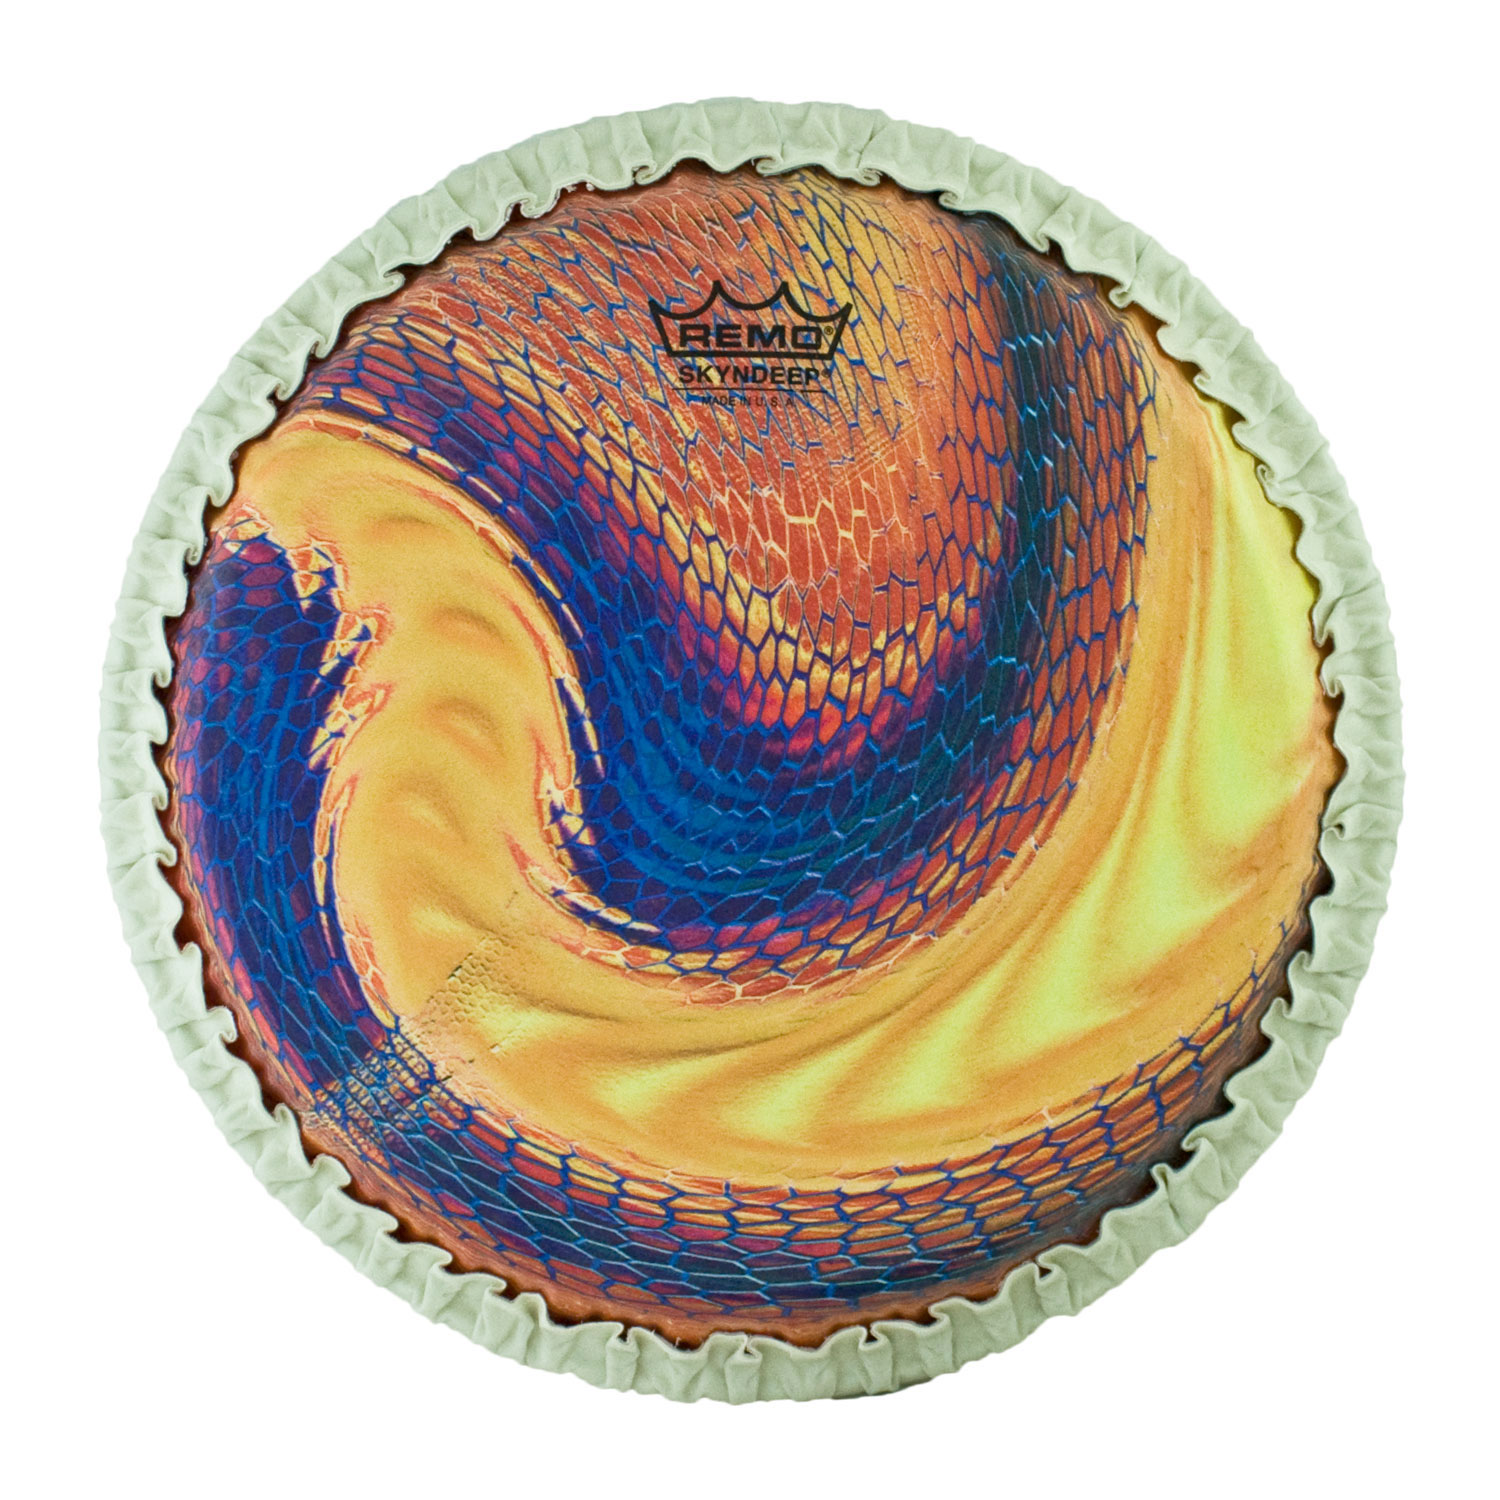 "Remo 12.5"" Tucked Skyndeep Conga Drum Head with Serpentine Day Graphic"